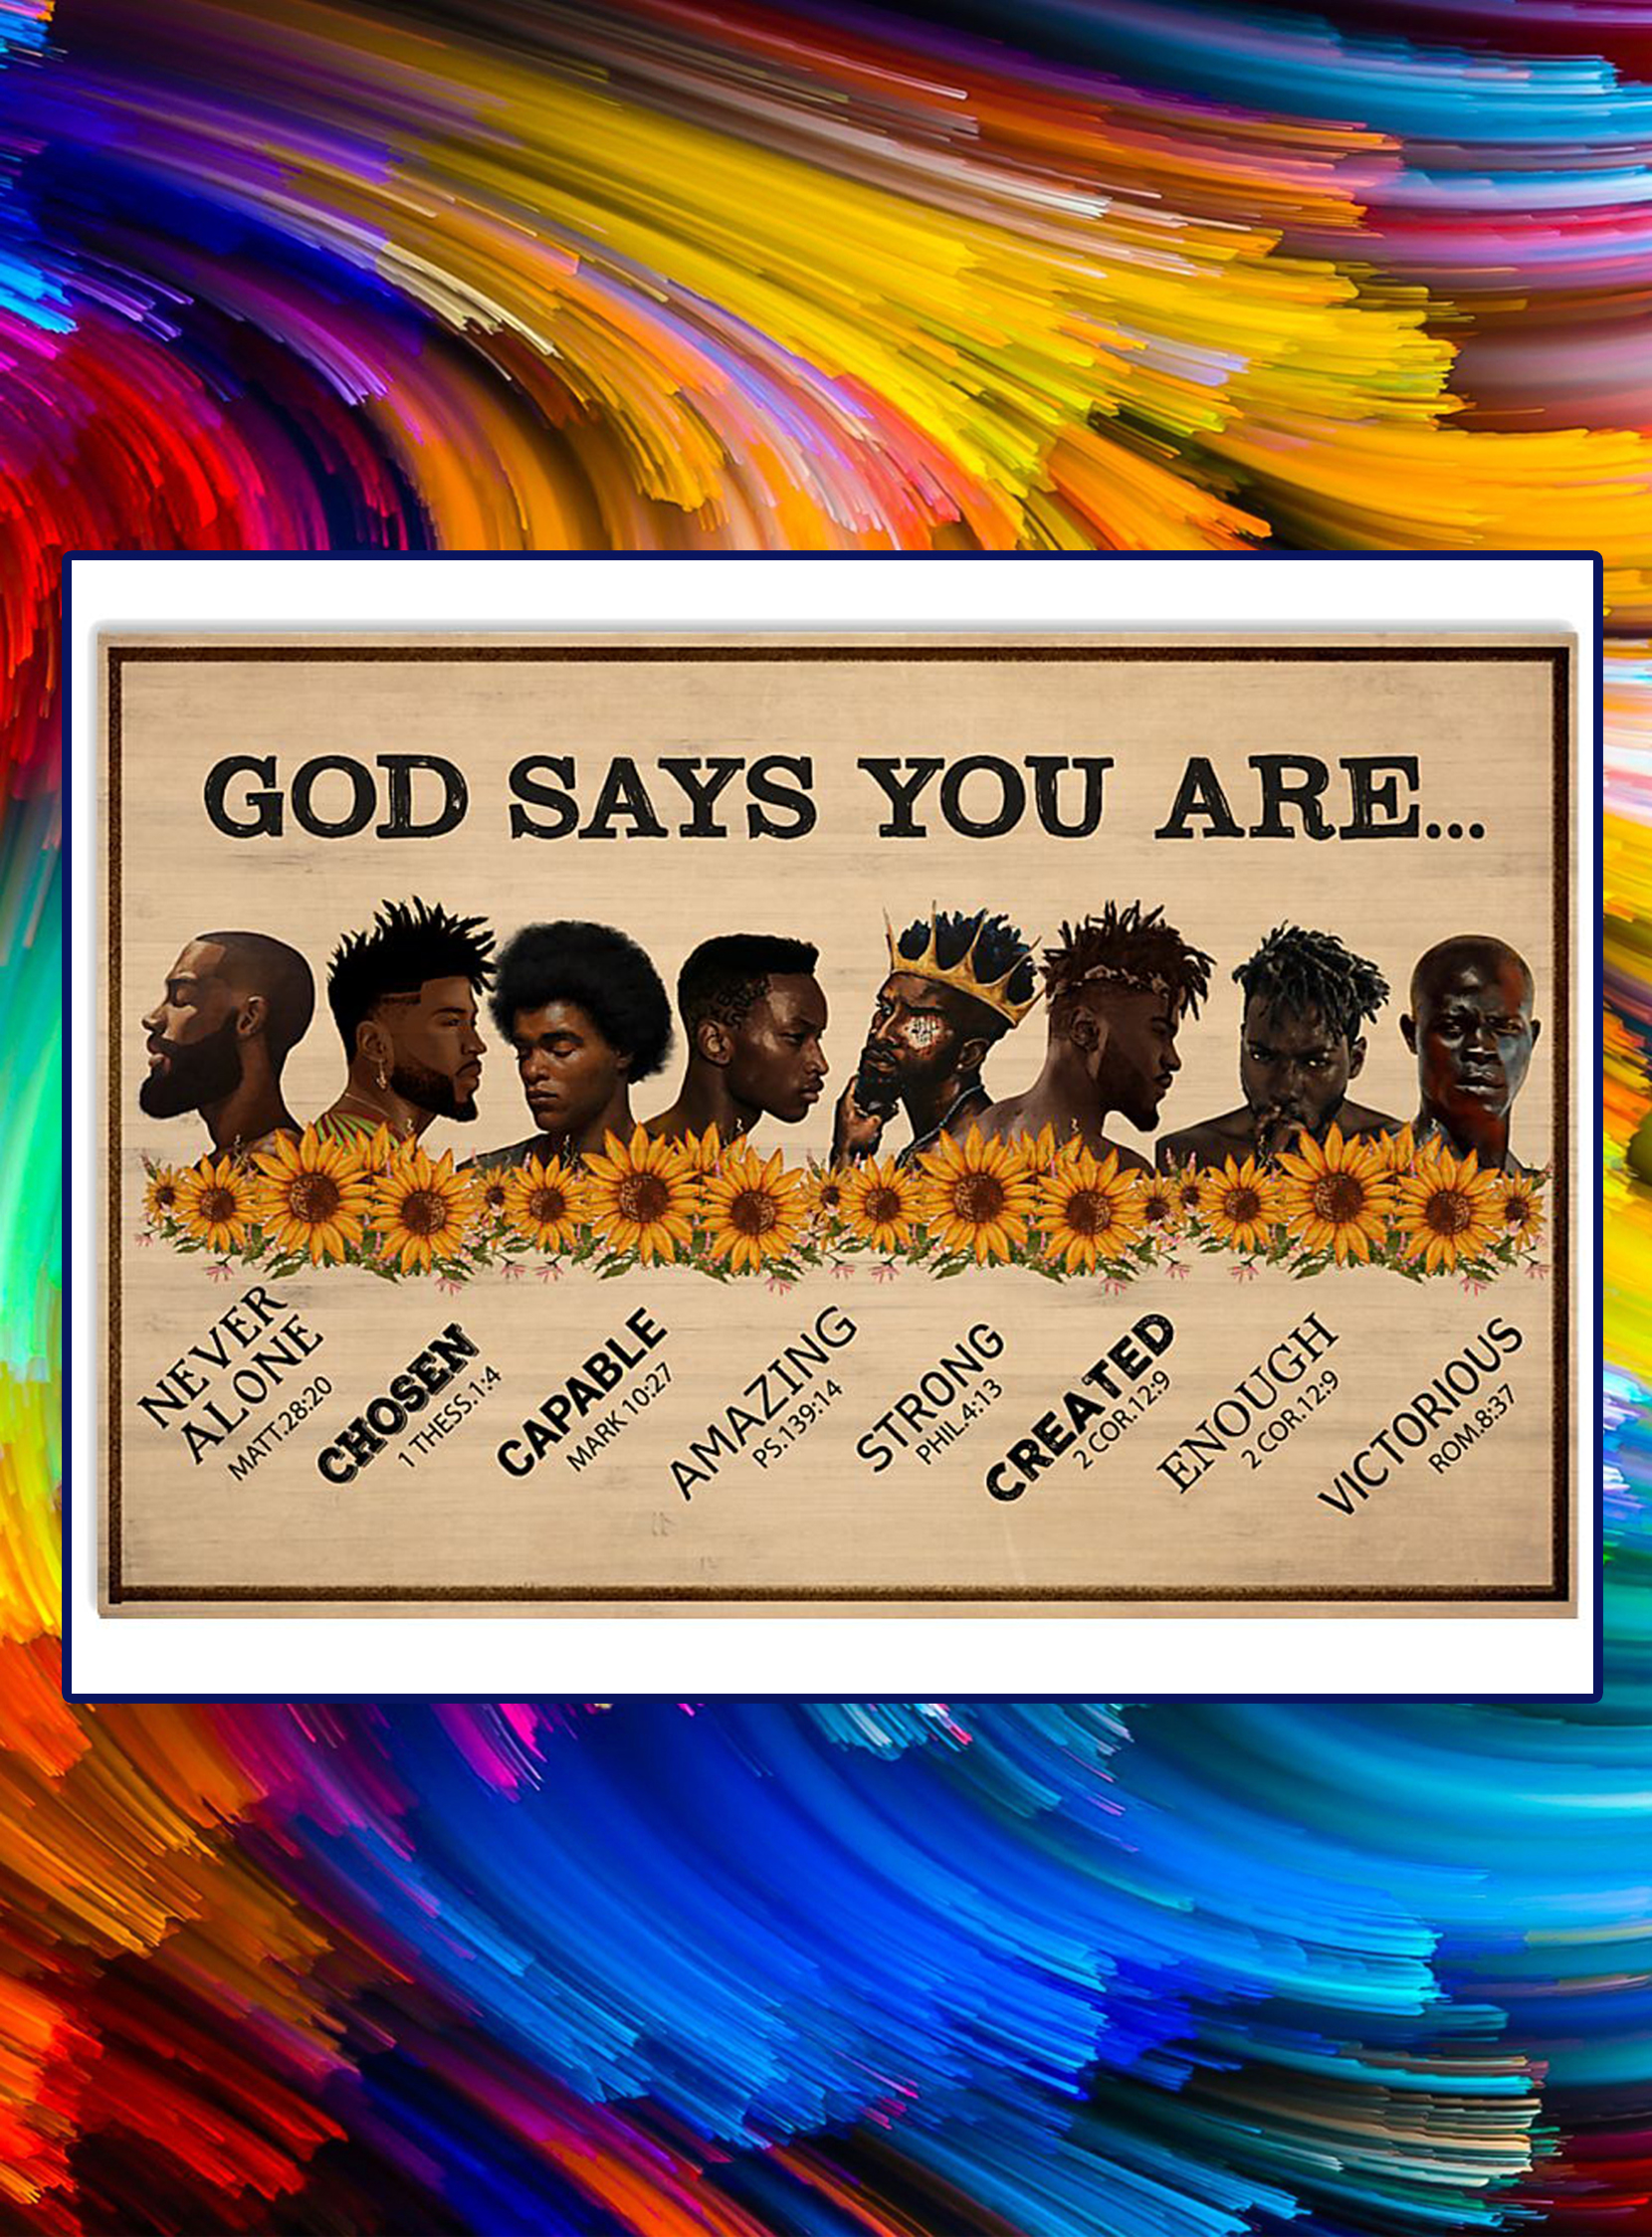 Black men God says you are poster - A3